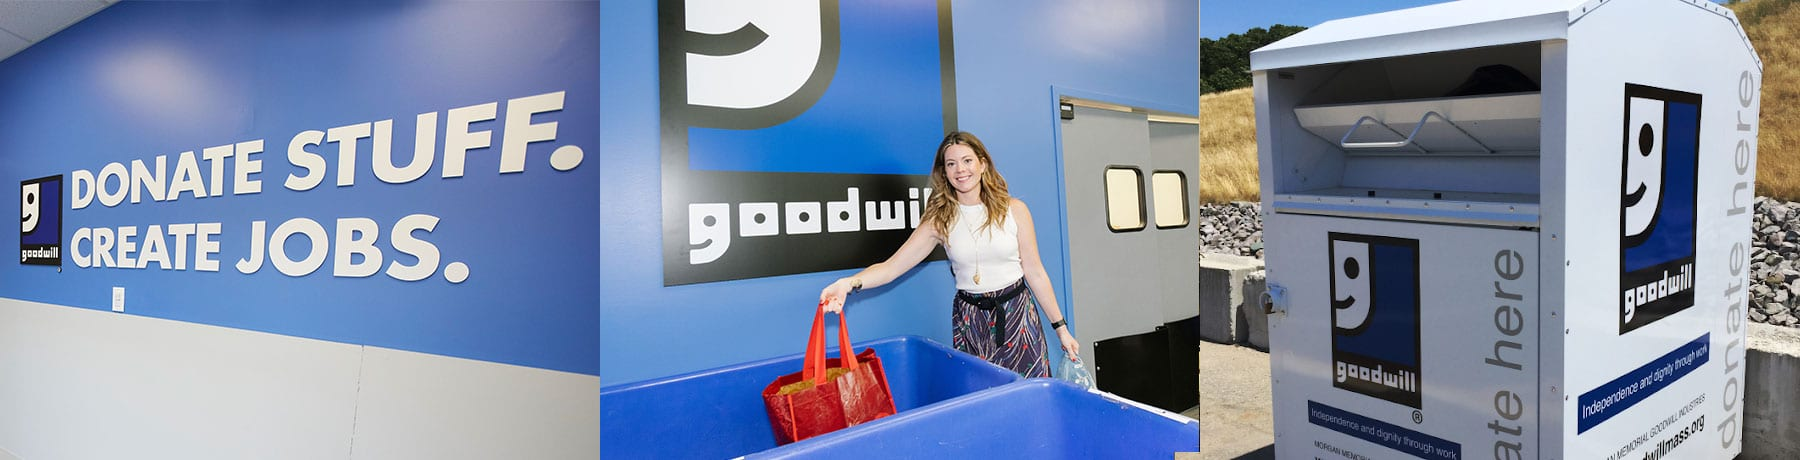 Donation Center Hours Locations Morgan Memorial Goodwill Industries